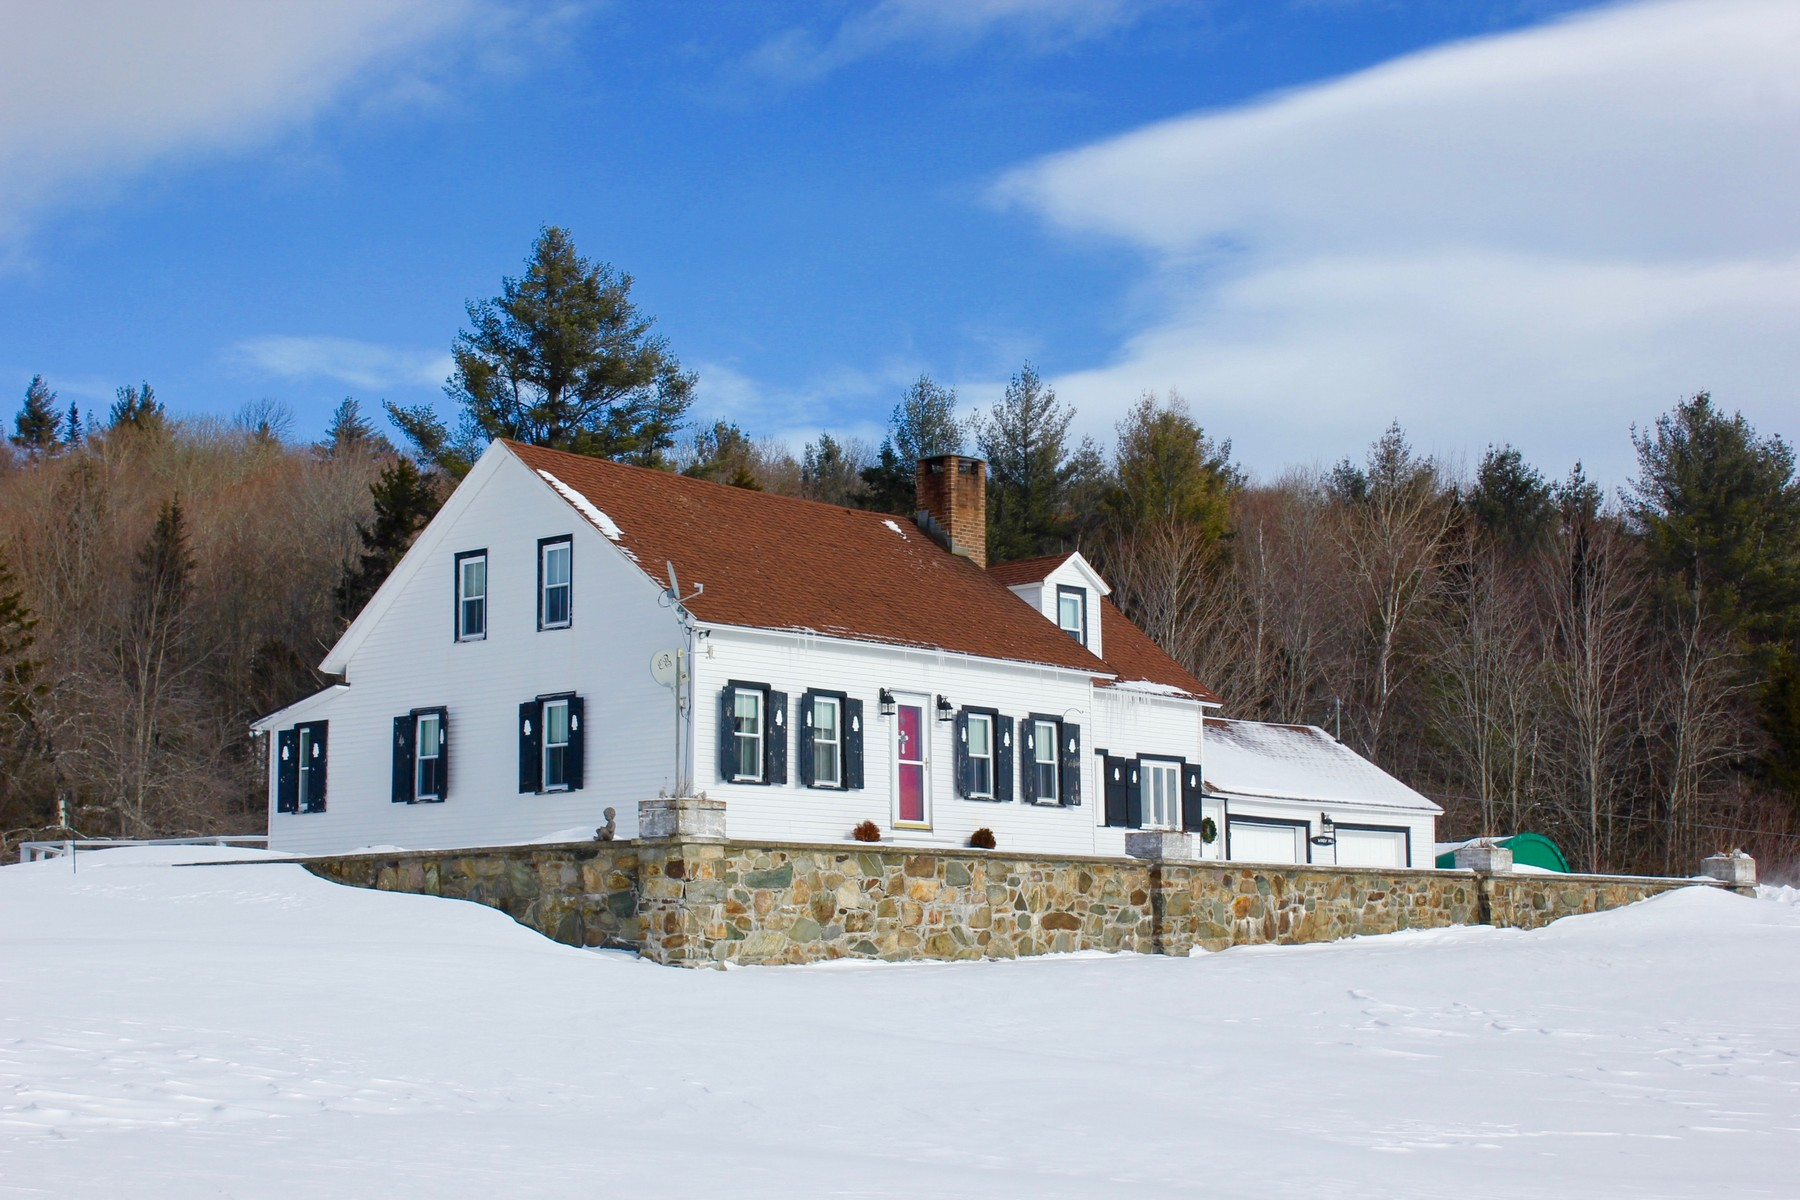 Casa Unifamiliar por un Venta en Welcome to Windy Lane 166 Windy Hill Ln Mount Holly, Vermont, 05758 Estados Unidos